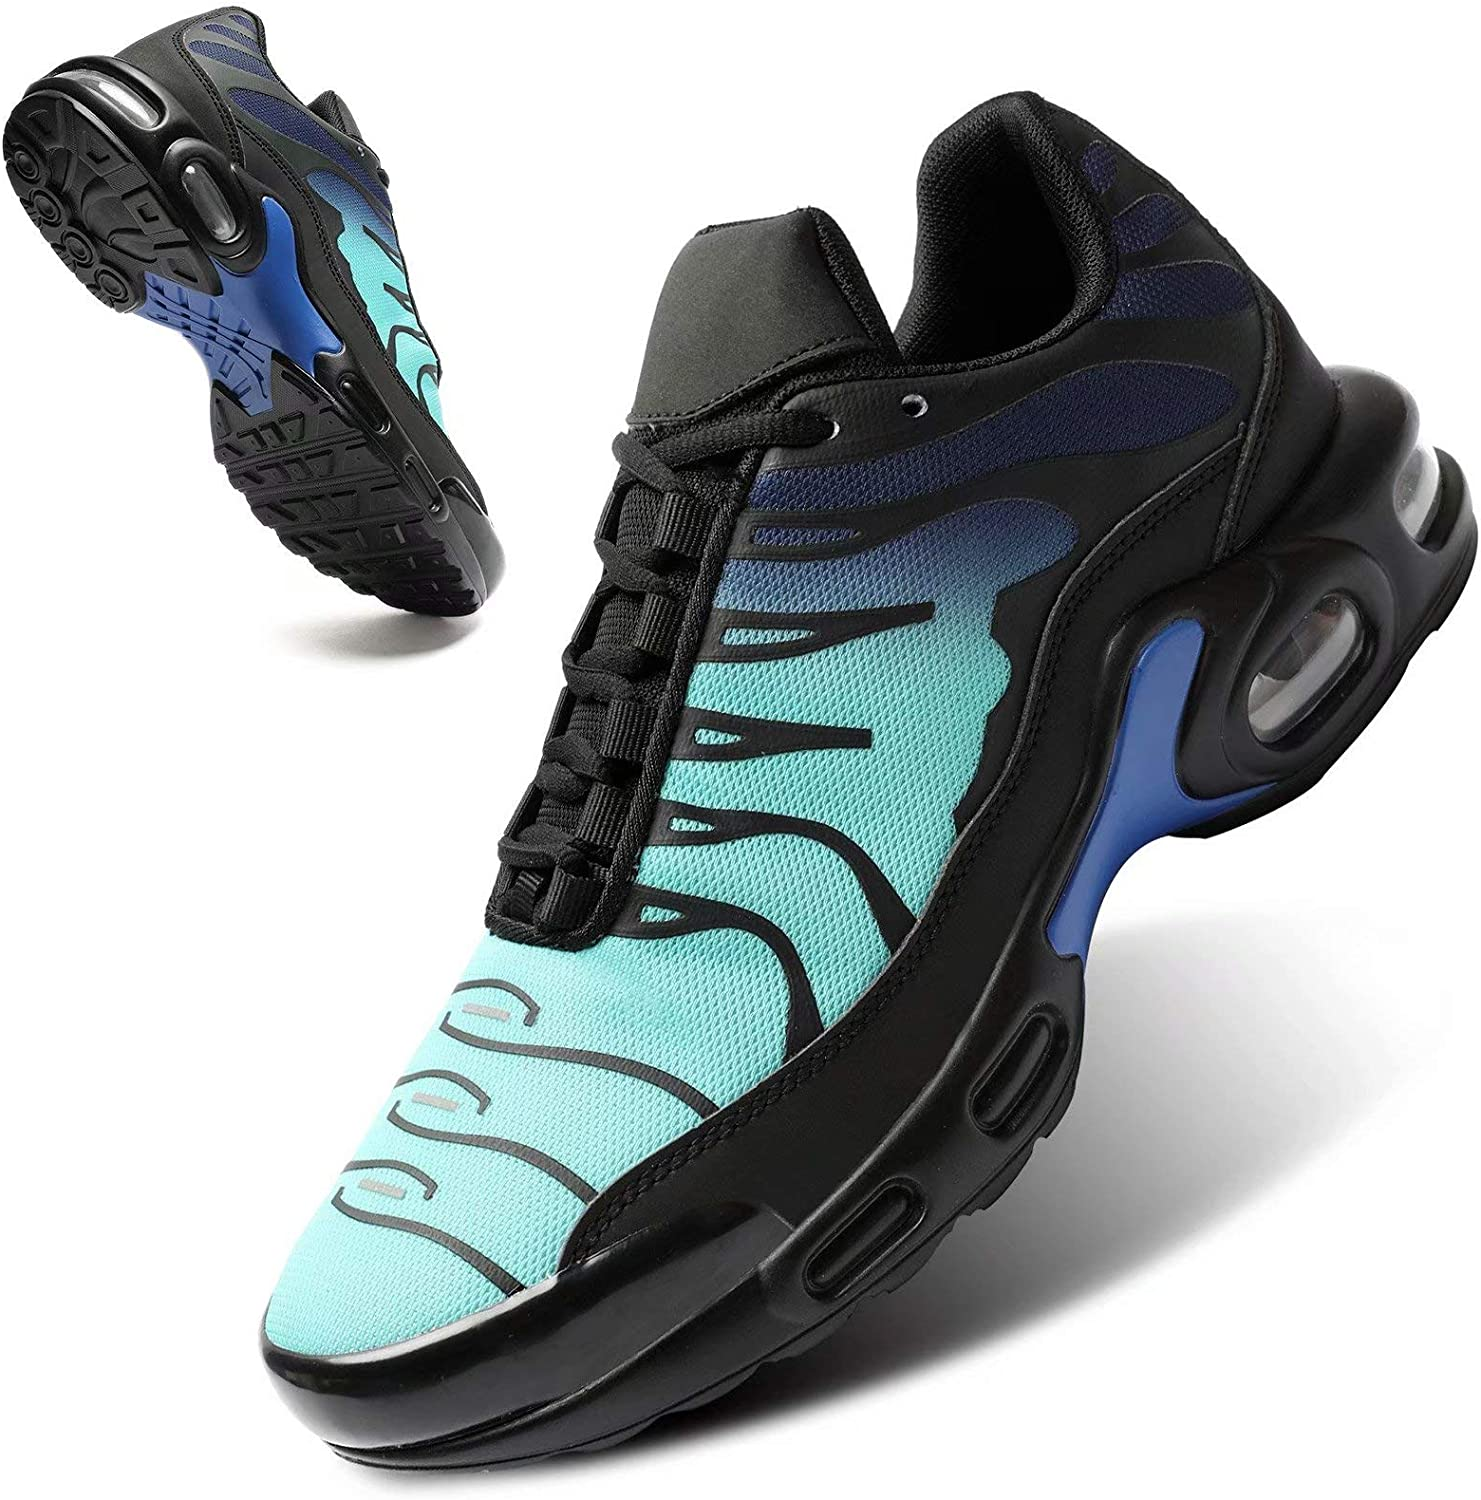 Mevlzz Men's Running Shoes Air Low Basketball for Men Now on sale New product!! Top